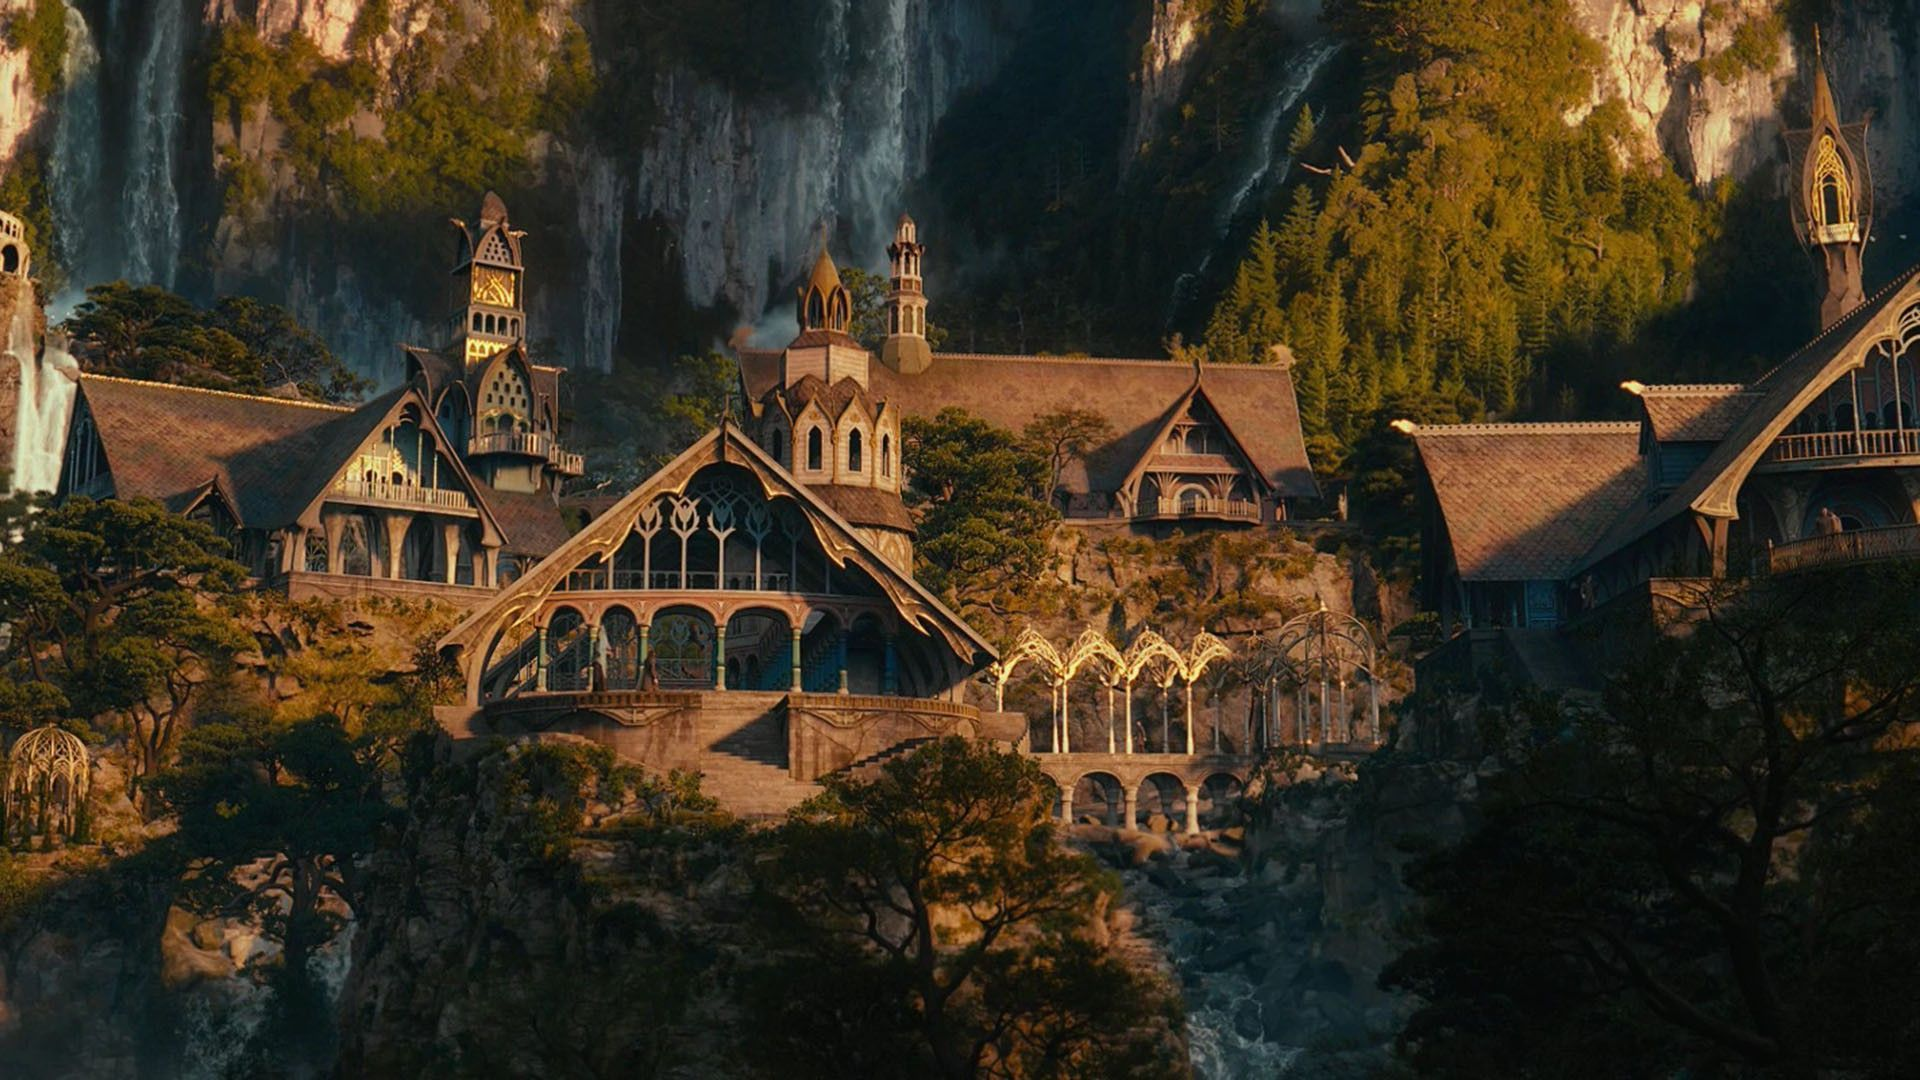 Rivendell the lord of the rings wallpaper the lord of the rivendell the lord of the rings wallpaper voltagebd Image collections